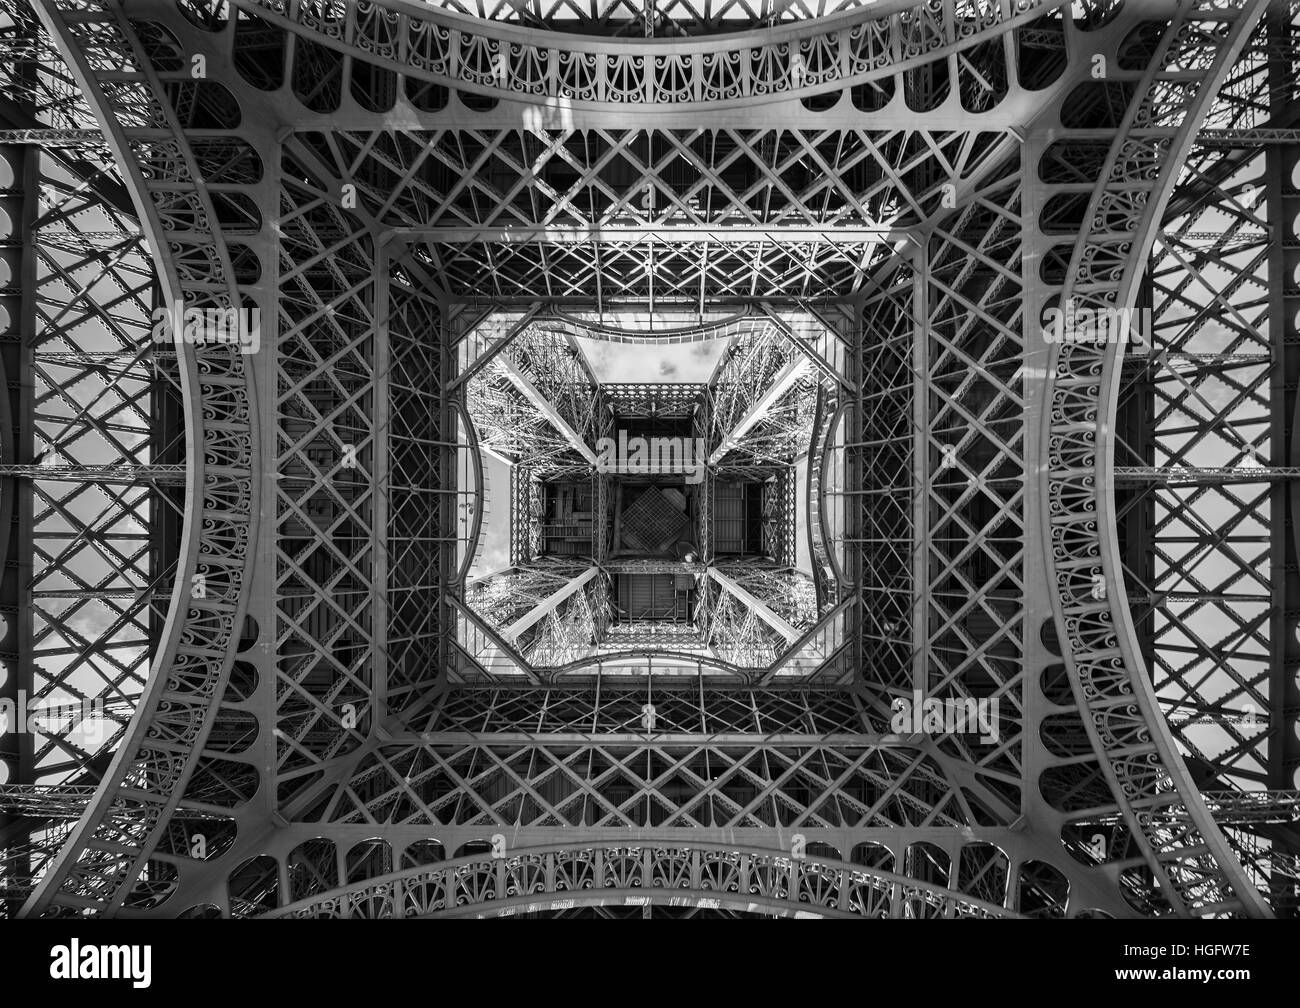 The Eiffel Tower, view from below, Paris France - Stock Image